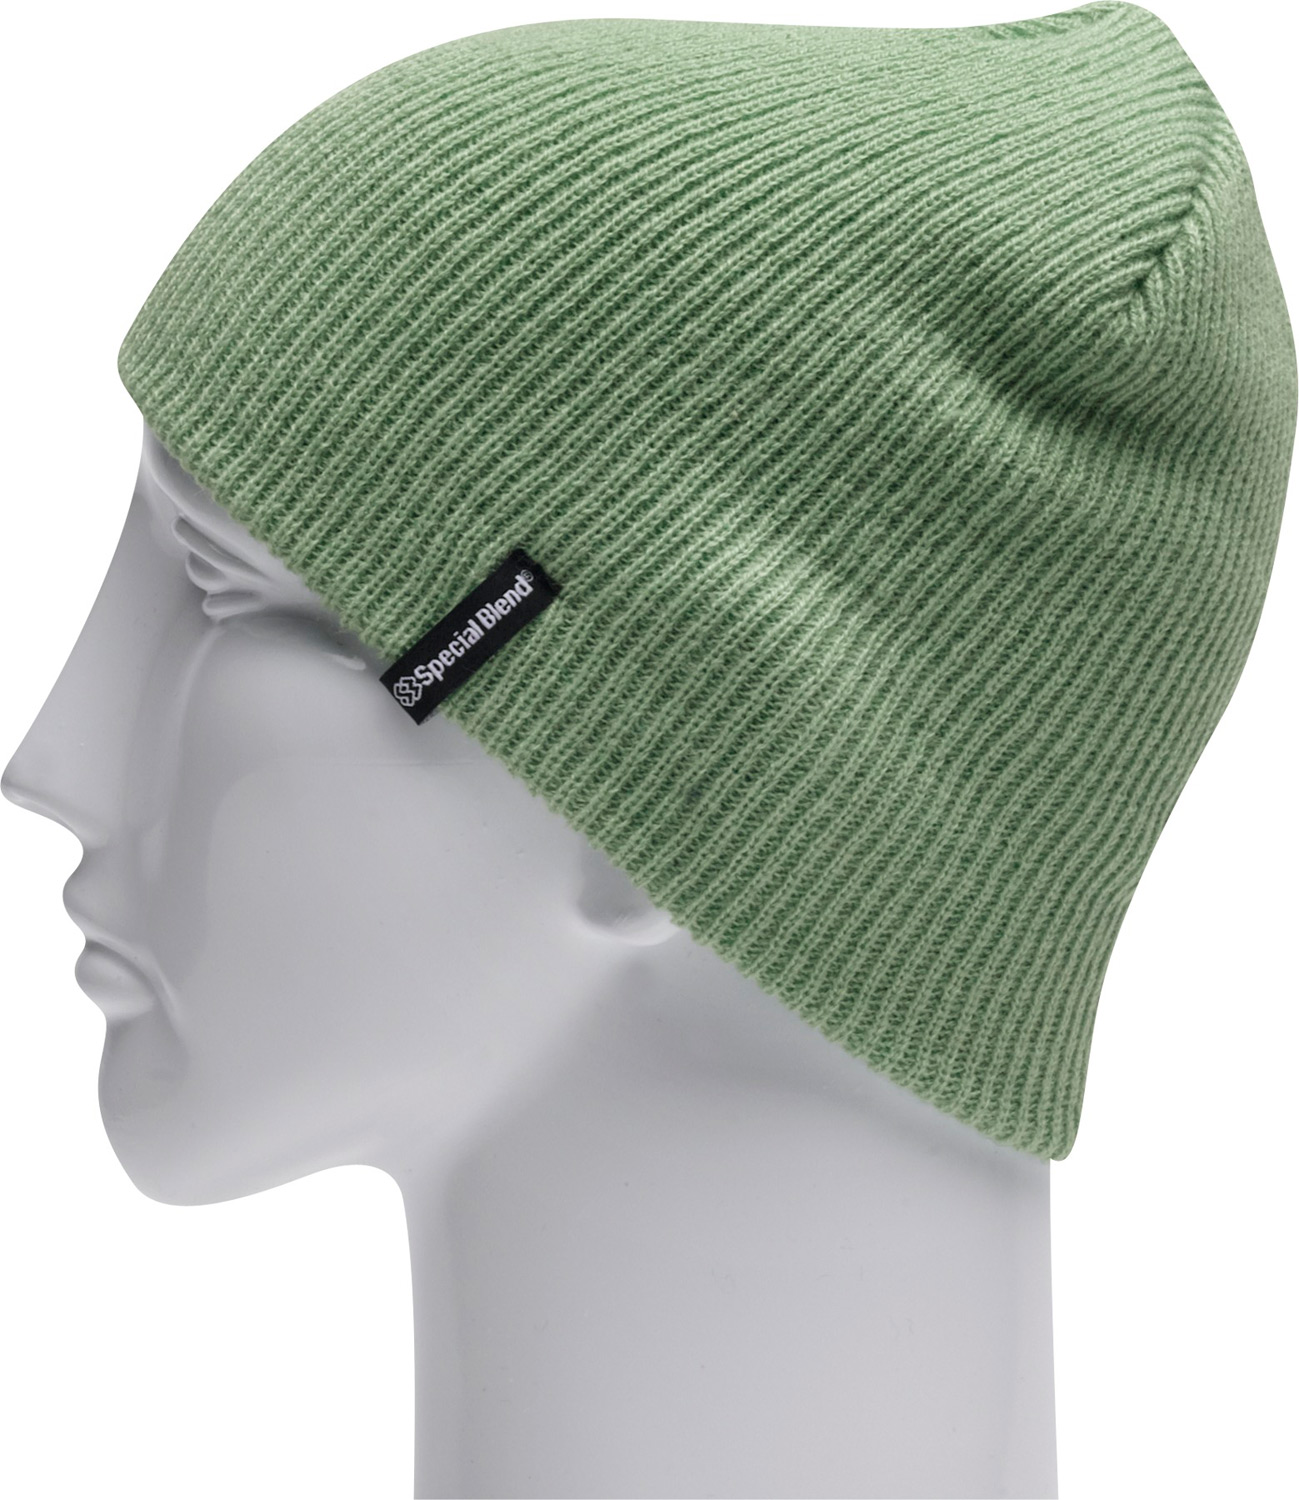 "Key Features of the Special Blend Traverse Beanie: Machine knit 100% acrylic 9 1/2"" tall 1x1 fine rib One size fits all - $13.95"